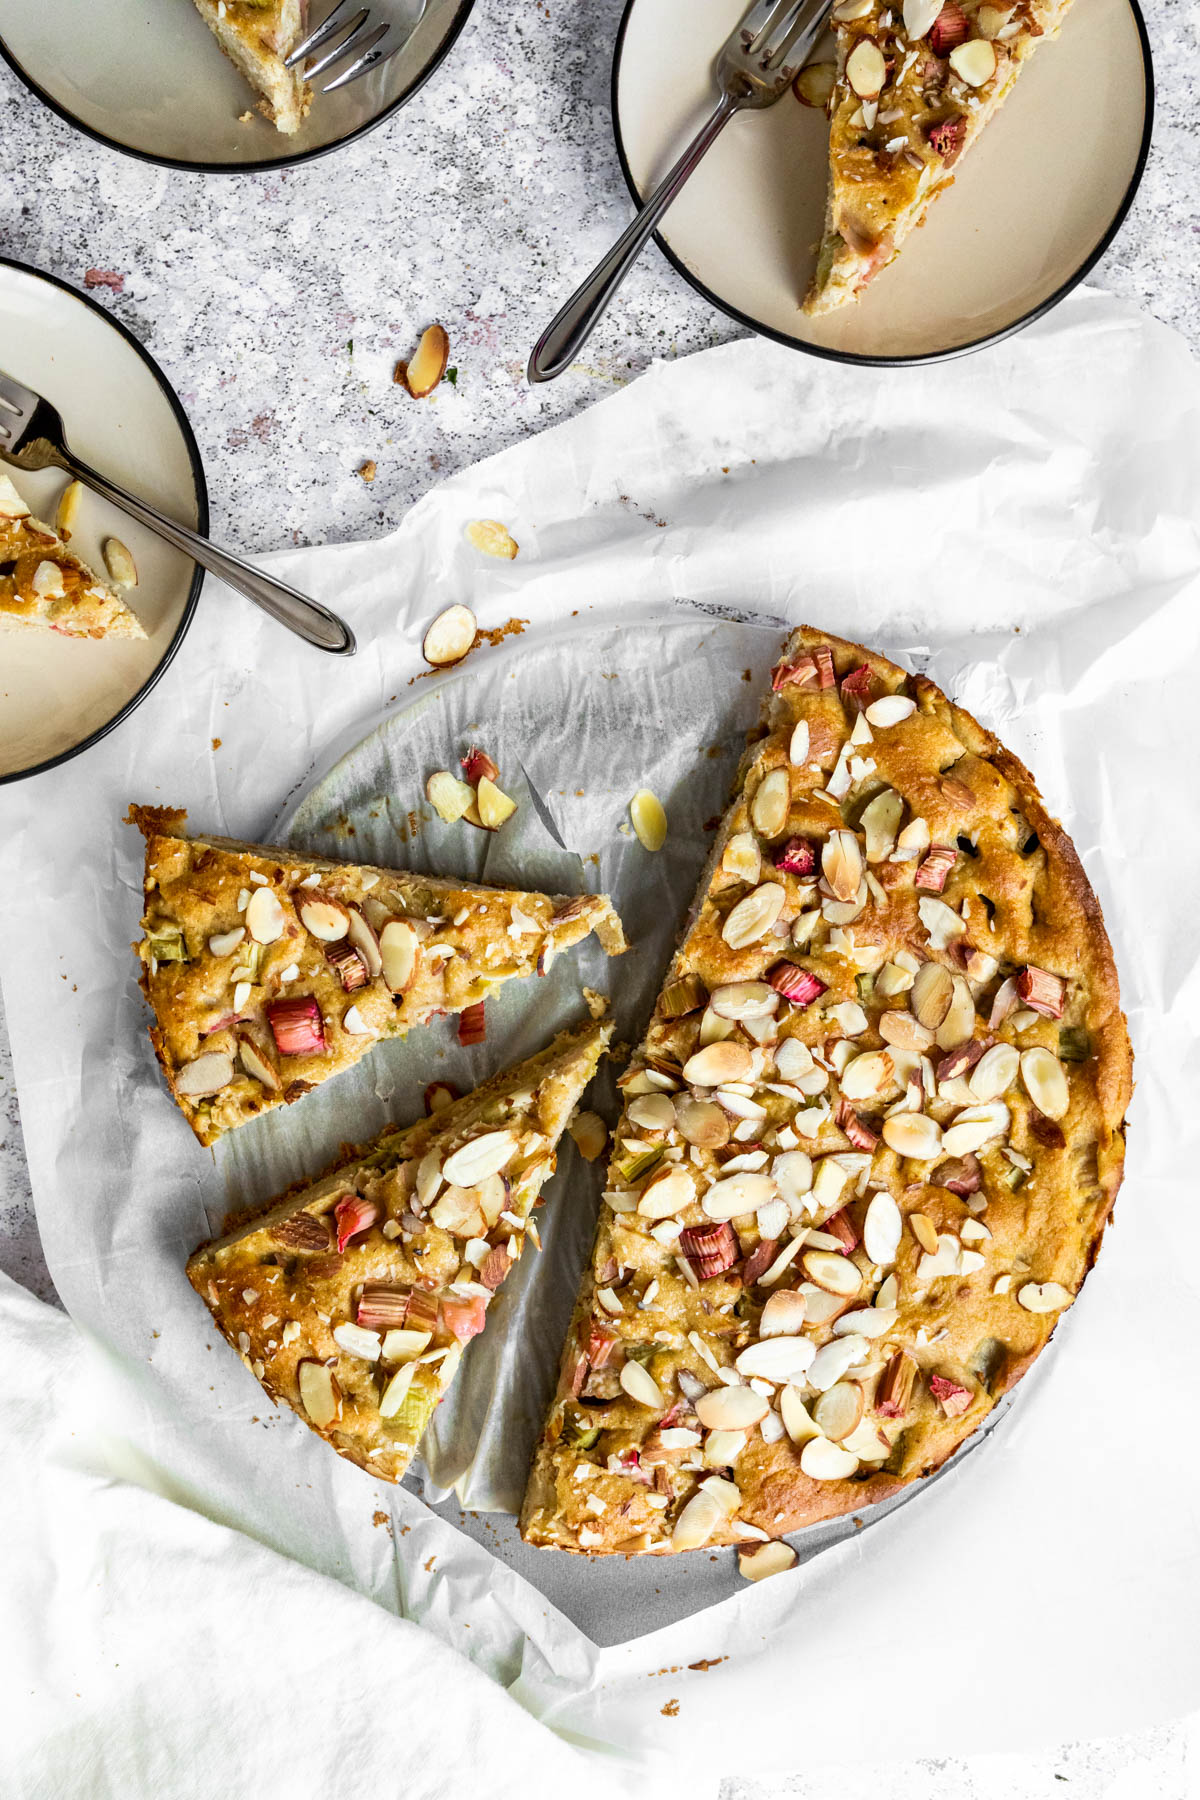 Whole Rhubarb Cake with 5 slices .